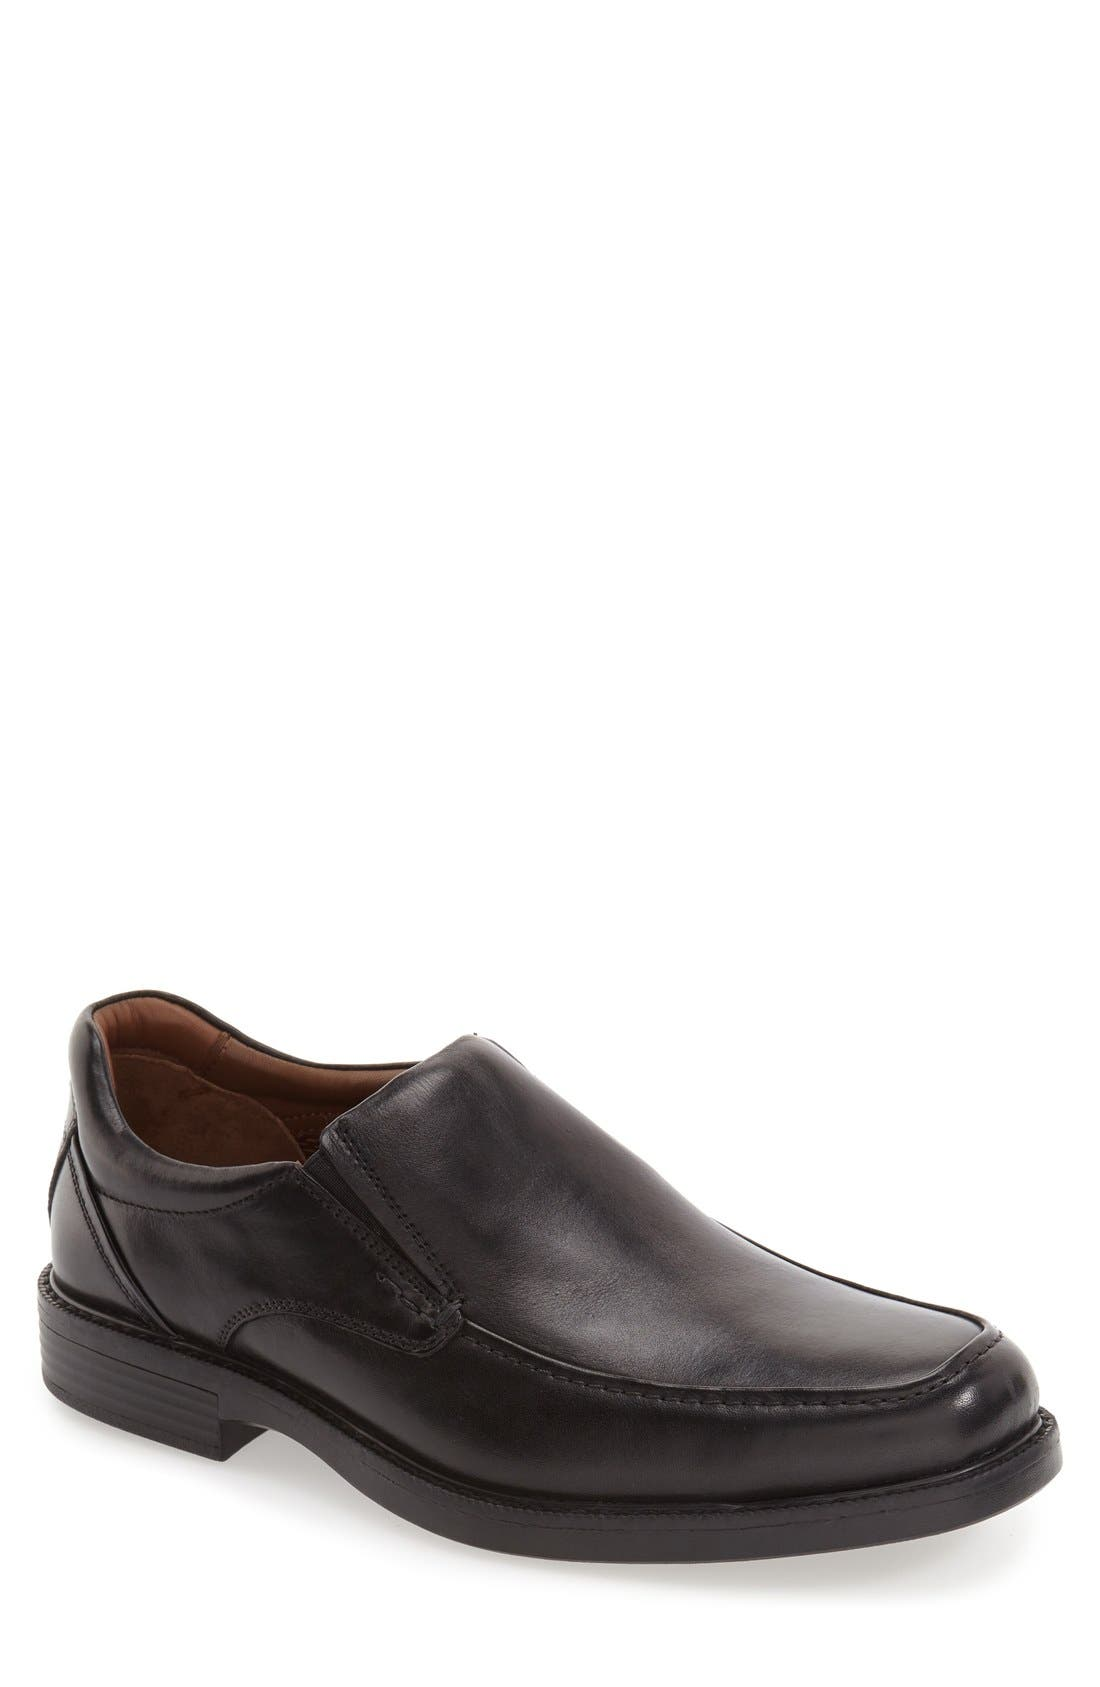 JOHNSTON & MURPHY Stanton Waterproof Venetian Loafer